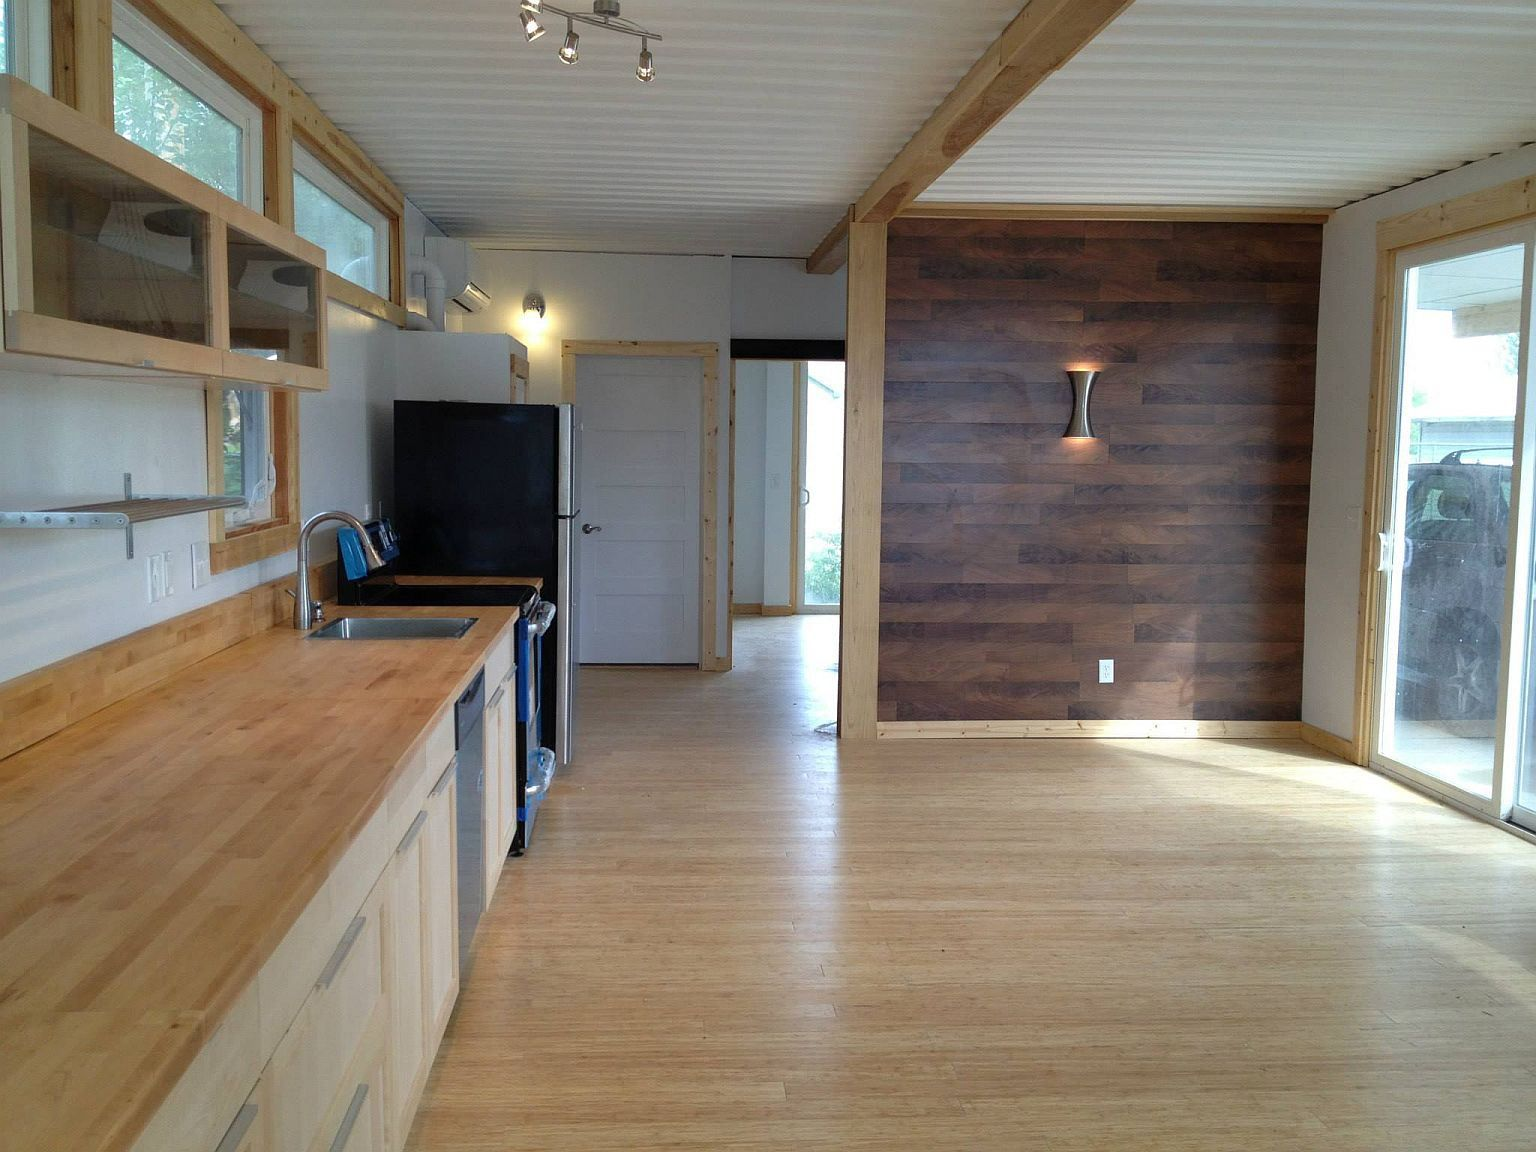 sarah house, an affordable green container home with 1 bedroom in